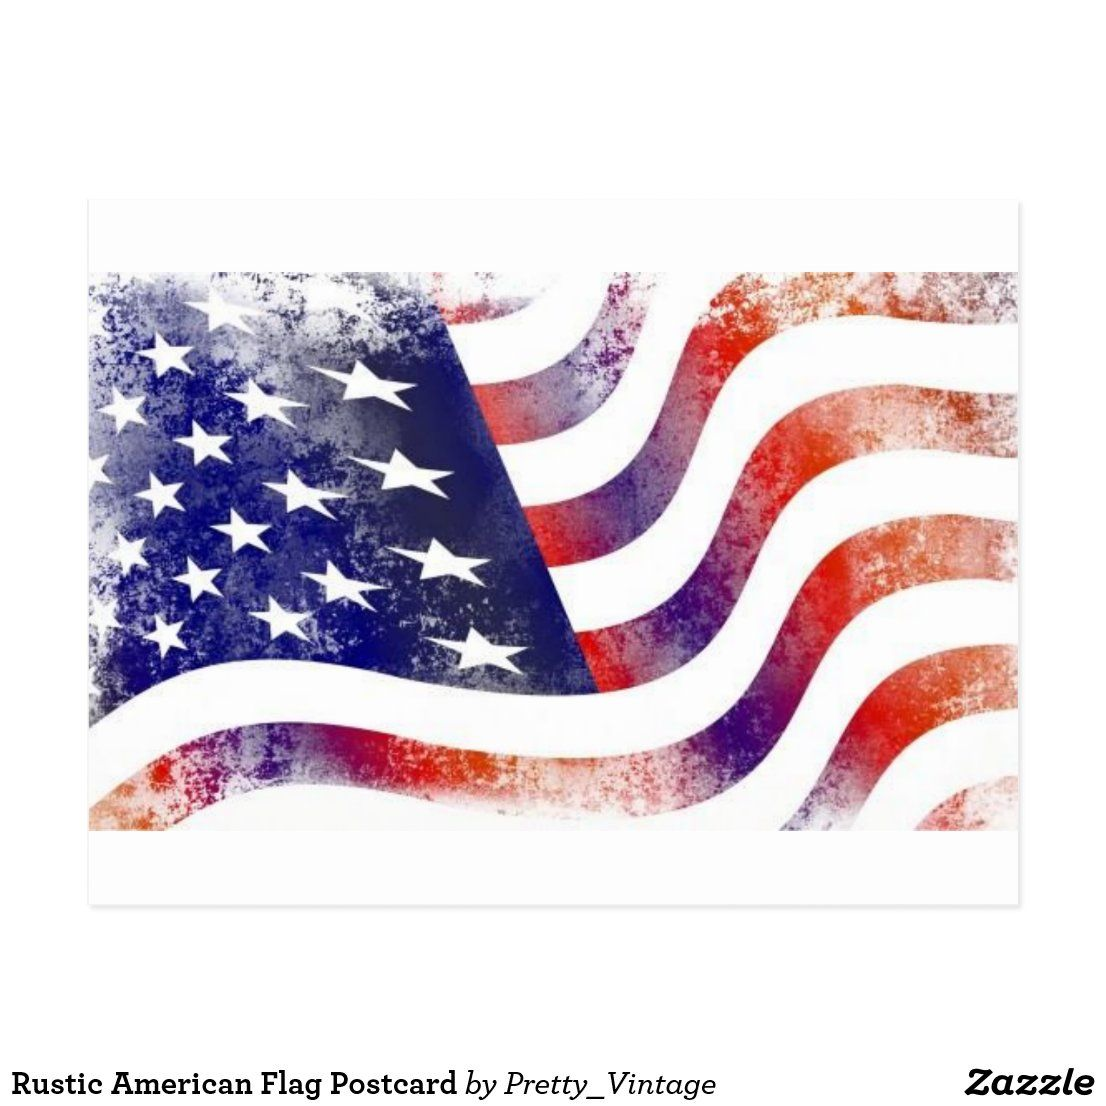 Rustic American Flag Postcard Zazzle Com In 2020 American Flag Images Rustic American Flag American Flag Waving